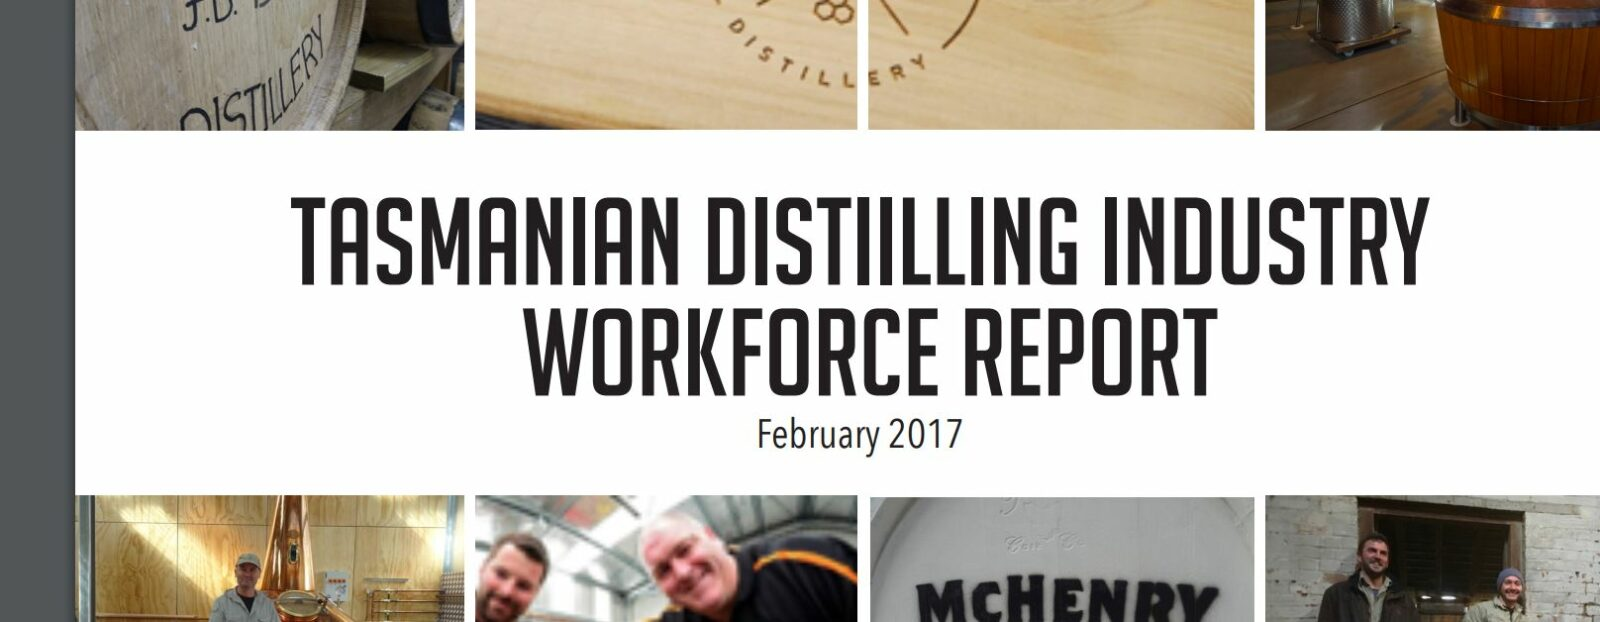 cover of workforce report for distilling